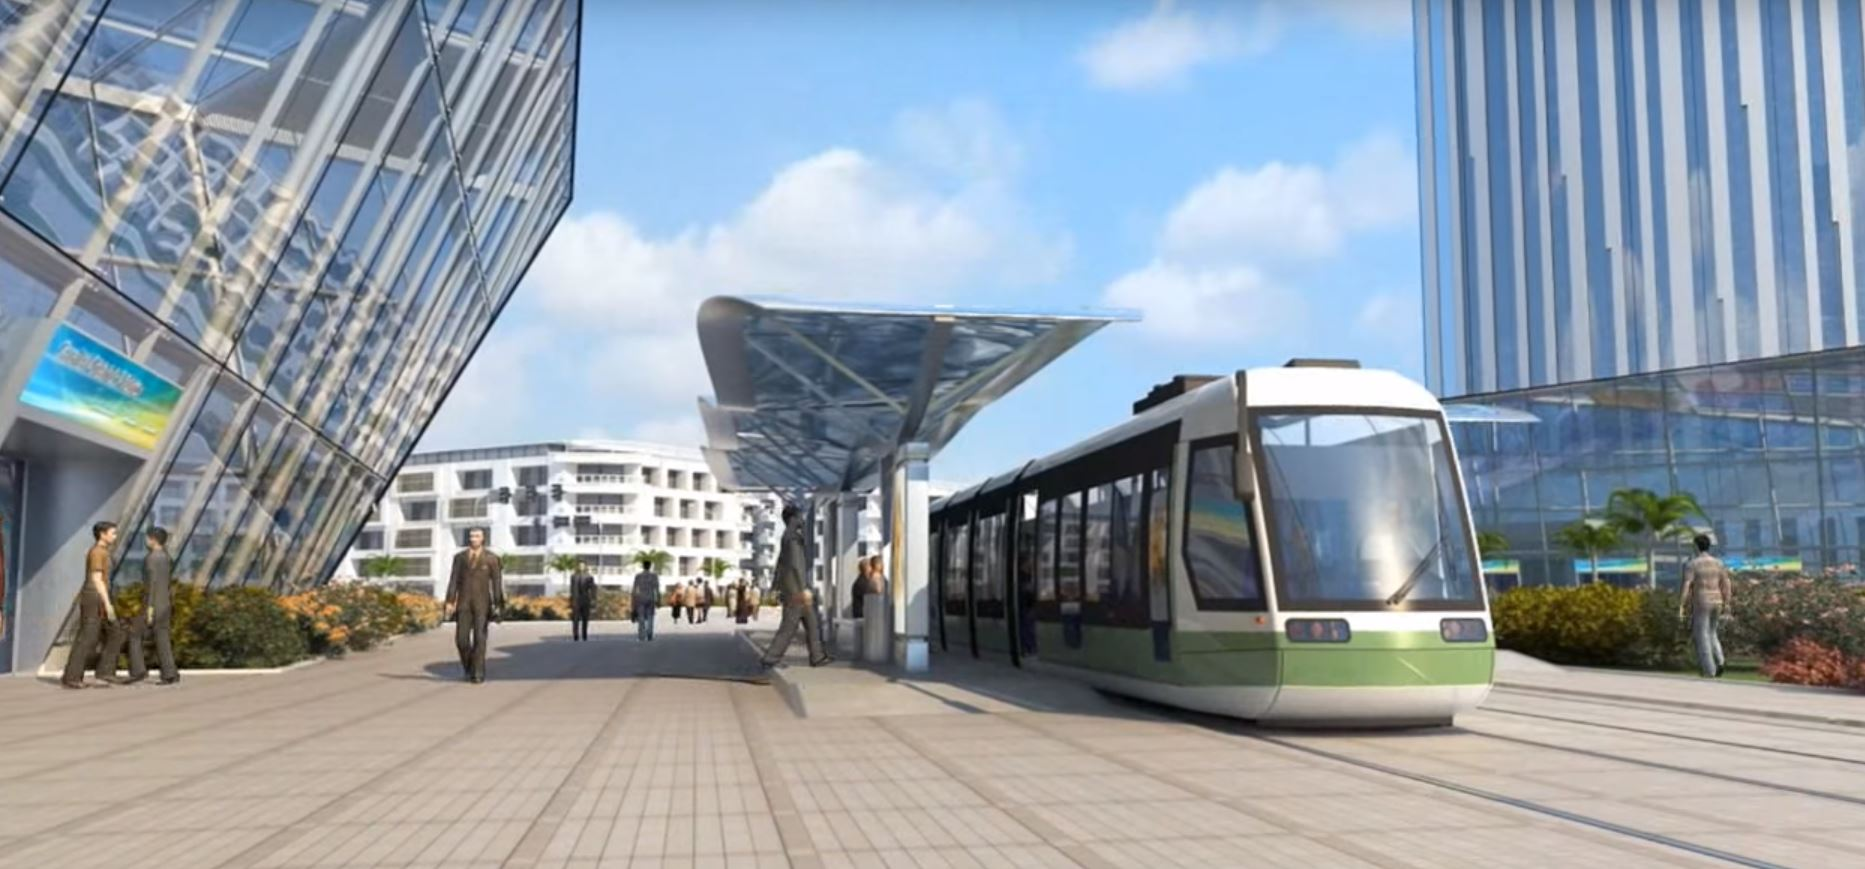 Abu Dhabis metro rail system planned to launch in 2018